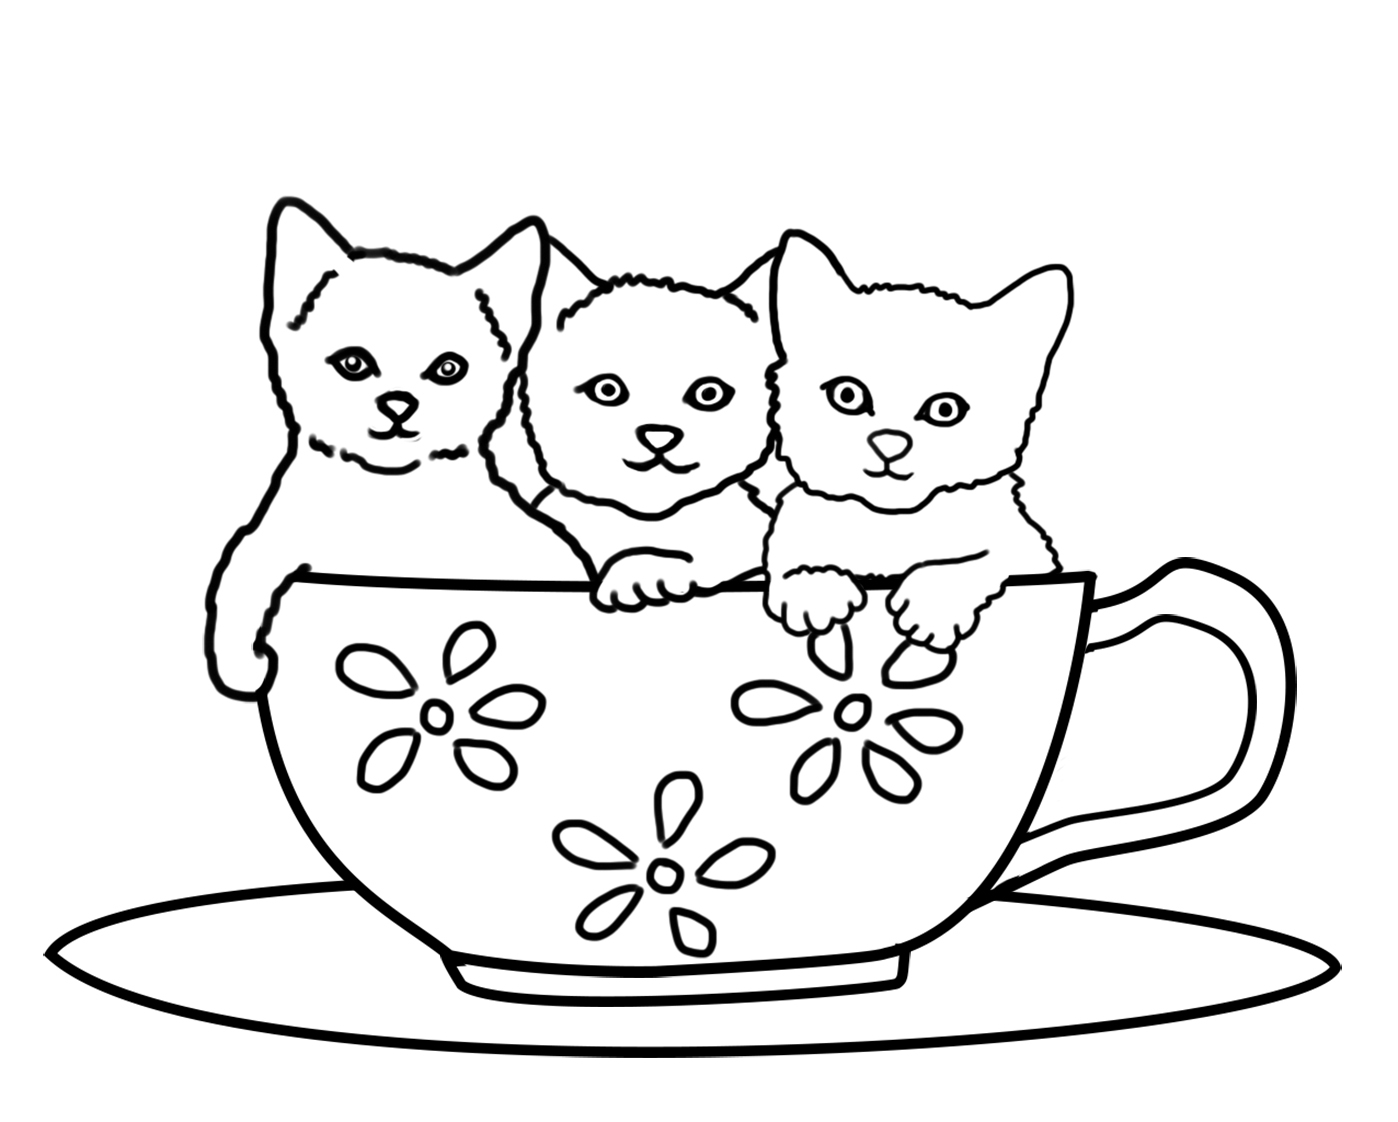 kitten color page cat coloring pages page color kitten